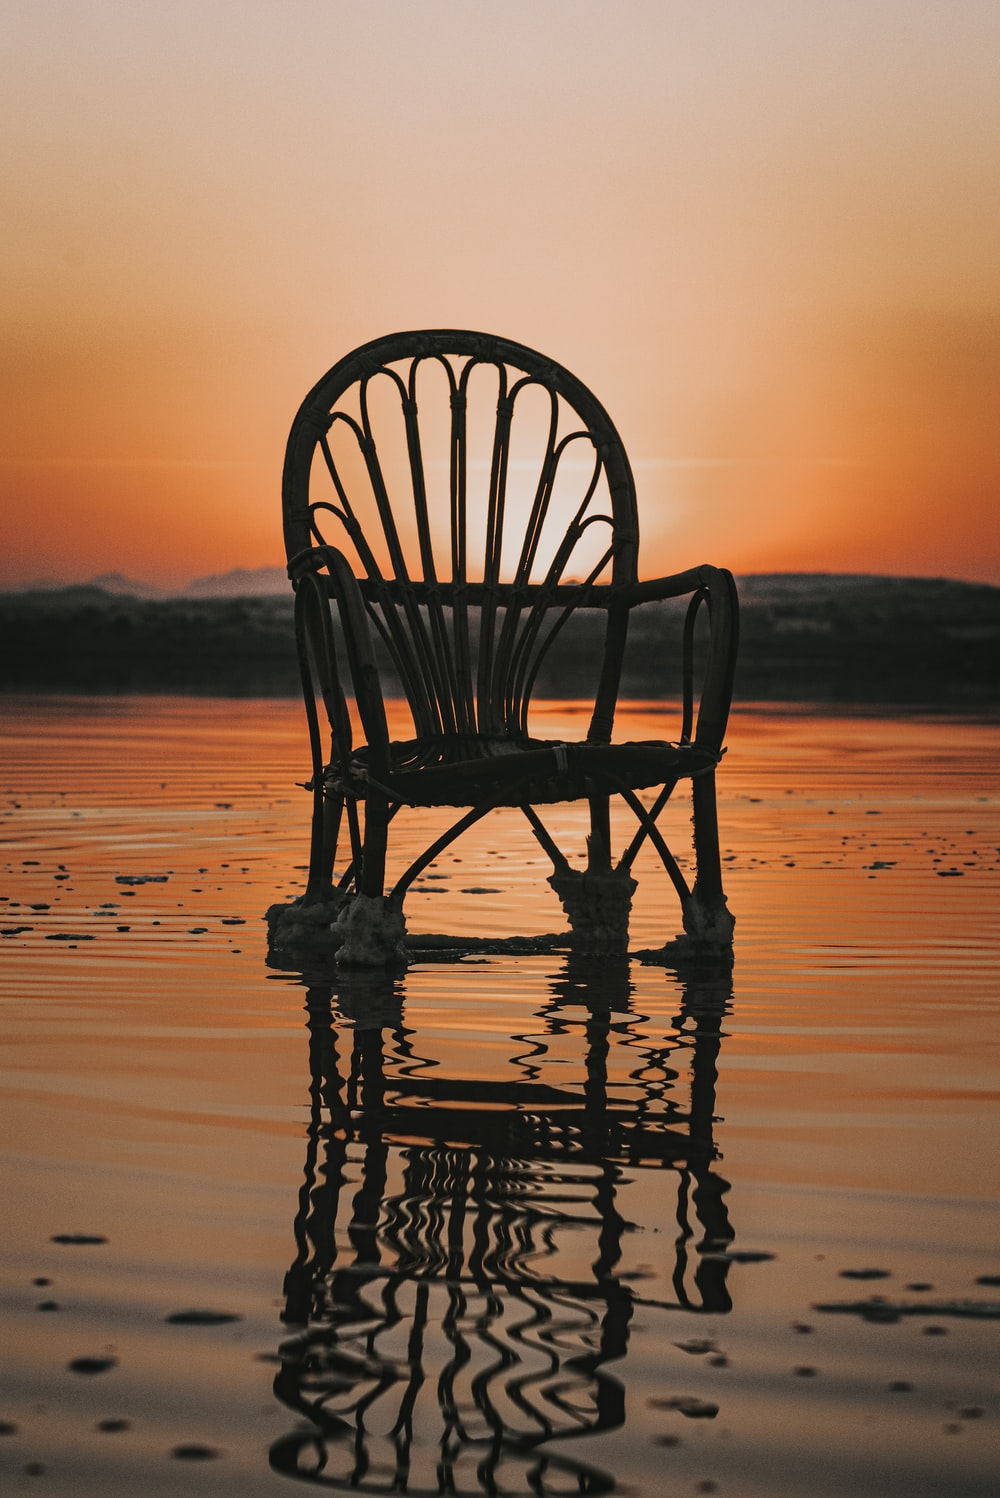 silhouette of wooden chair on beach during sunset